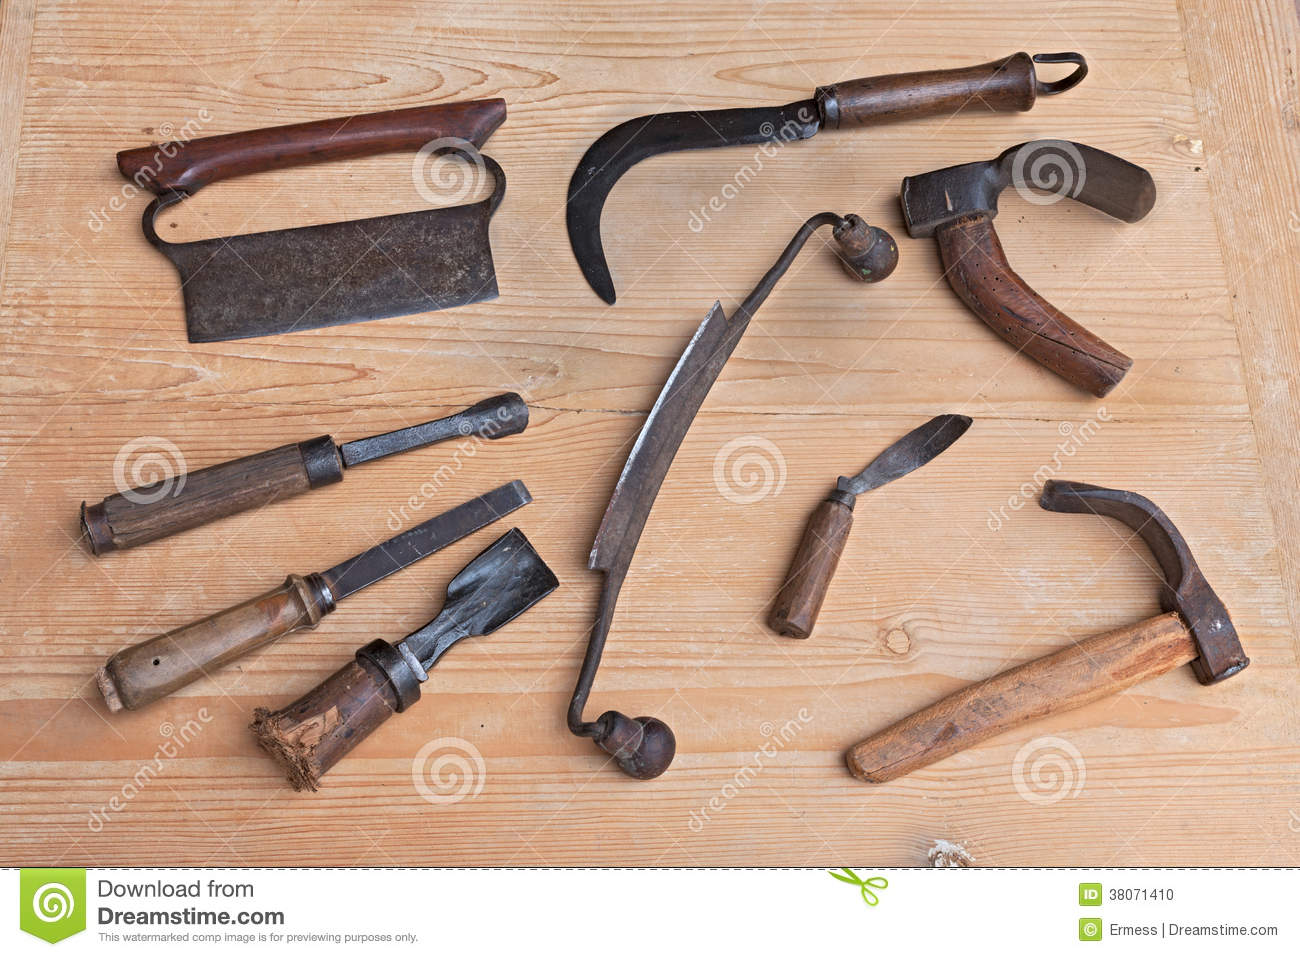 Old Wood Carving Tools Stock Photo Image Of Cutting 38071410